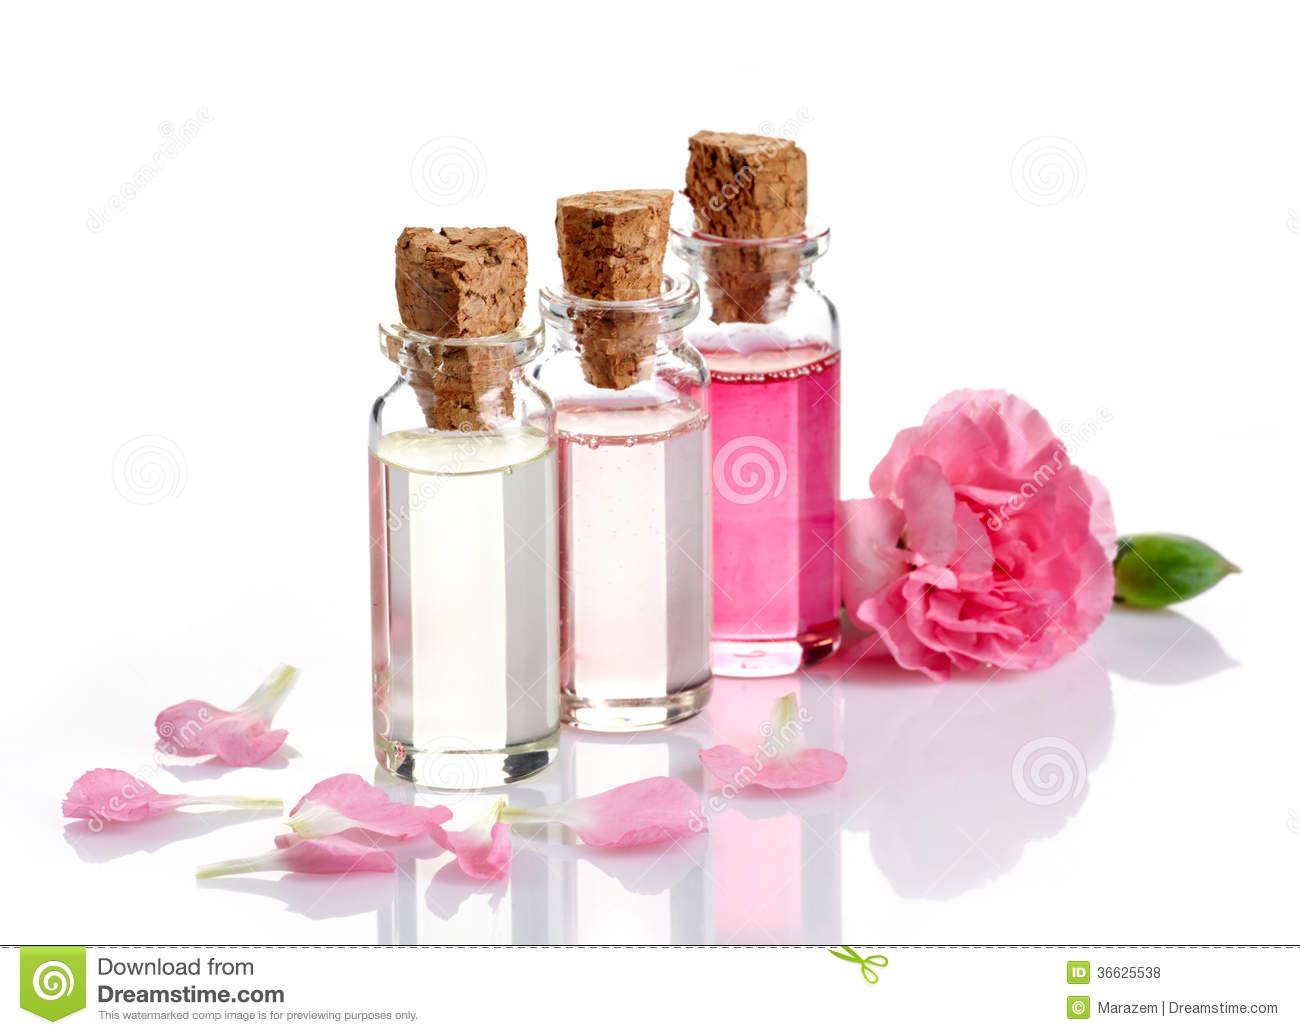 Bottles of spa essential oils royalty free stock photos for Adazl salon and beauty supply